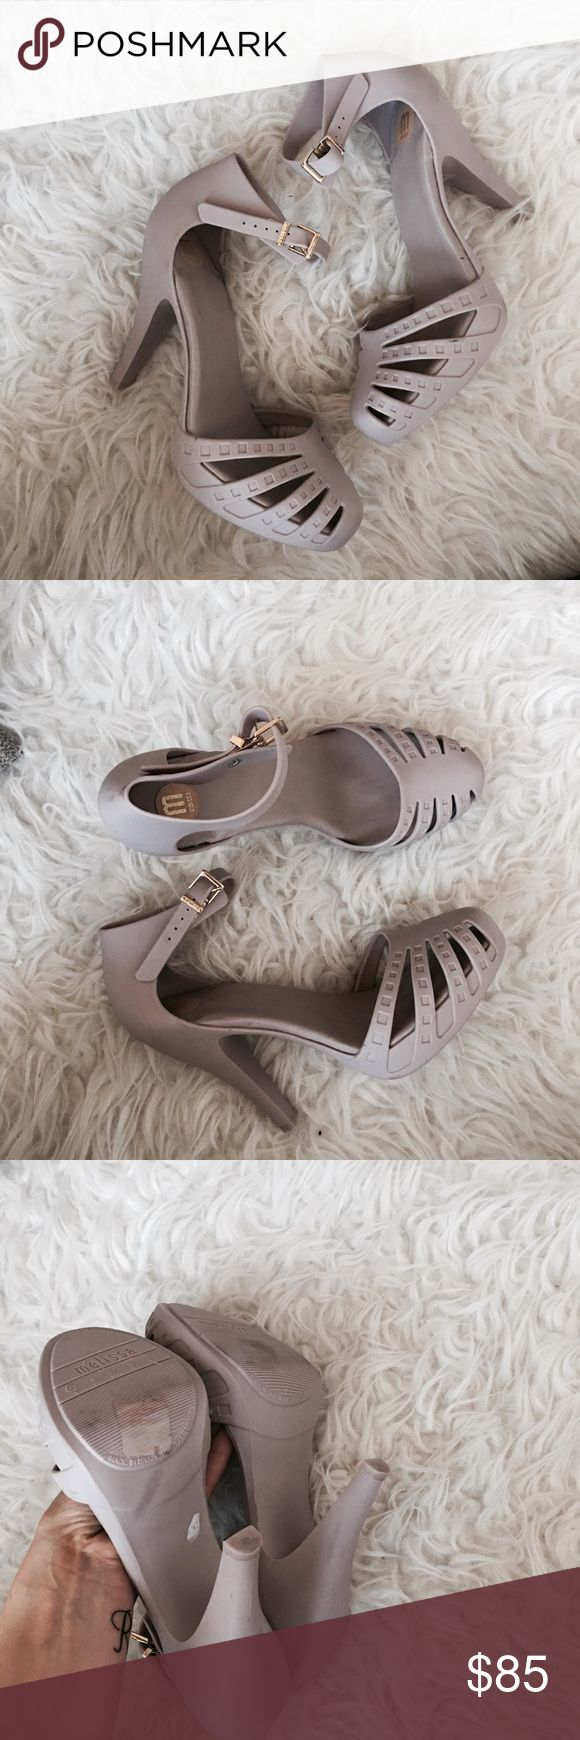 """Melissa Jelly Heels Super pretty jelly heels with 1"""" platform,4"""" heel. Only tried on indoors . New without box. Please submit all offers privately . No trades. Melissa Shoes Heels"""